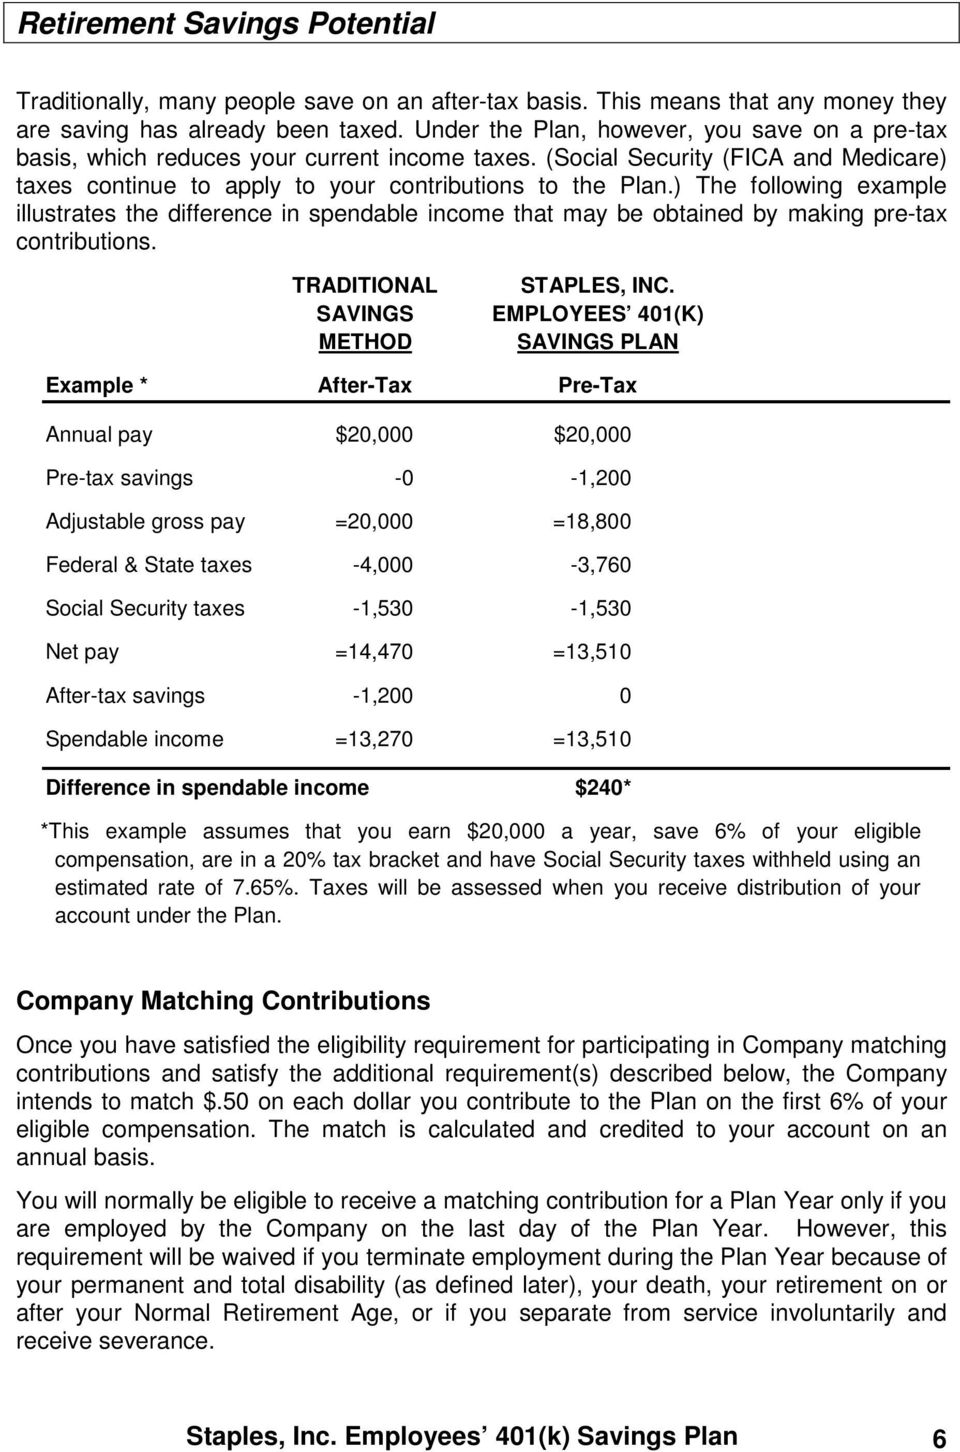 ) The following example illustrates the difference in spendable income that may be obtained by making pre-tax contributions. TRADITIONAL SAVINGS METHOD STAPLES, INC.